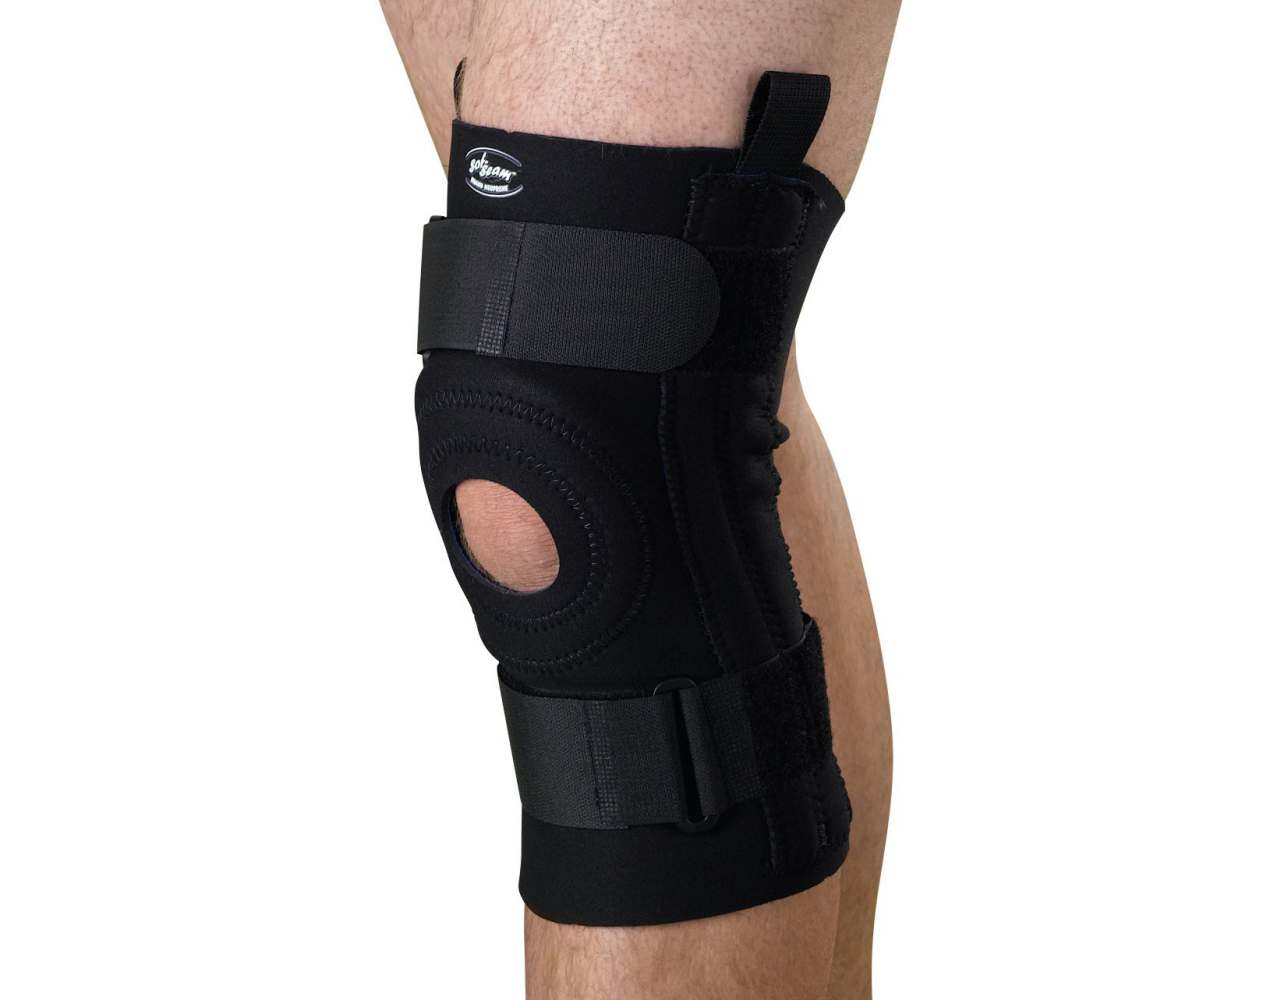 Medline Knee Supports with Removable U-Buttress - w/ U-Butress, 3Xl, Each - Model ORT232303XL